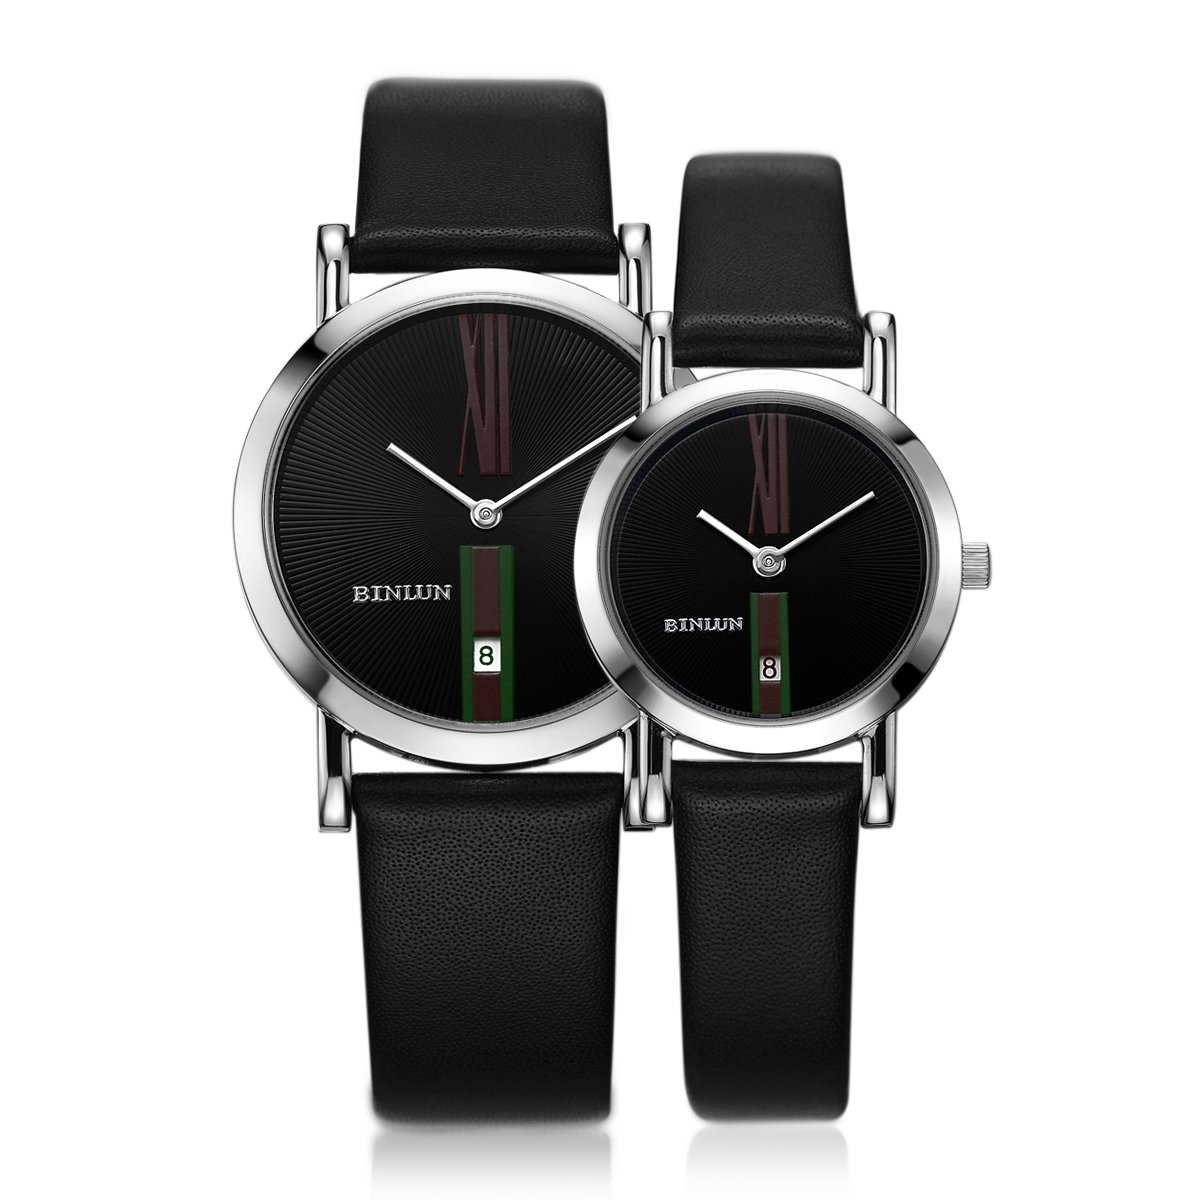 BINLUN Pair Couple Watches Set His and Hers Gifts Minimalist Waterproof Quartz Leather Watches with Date